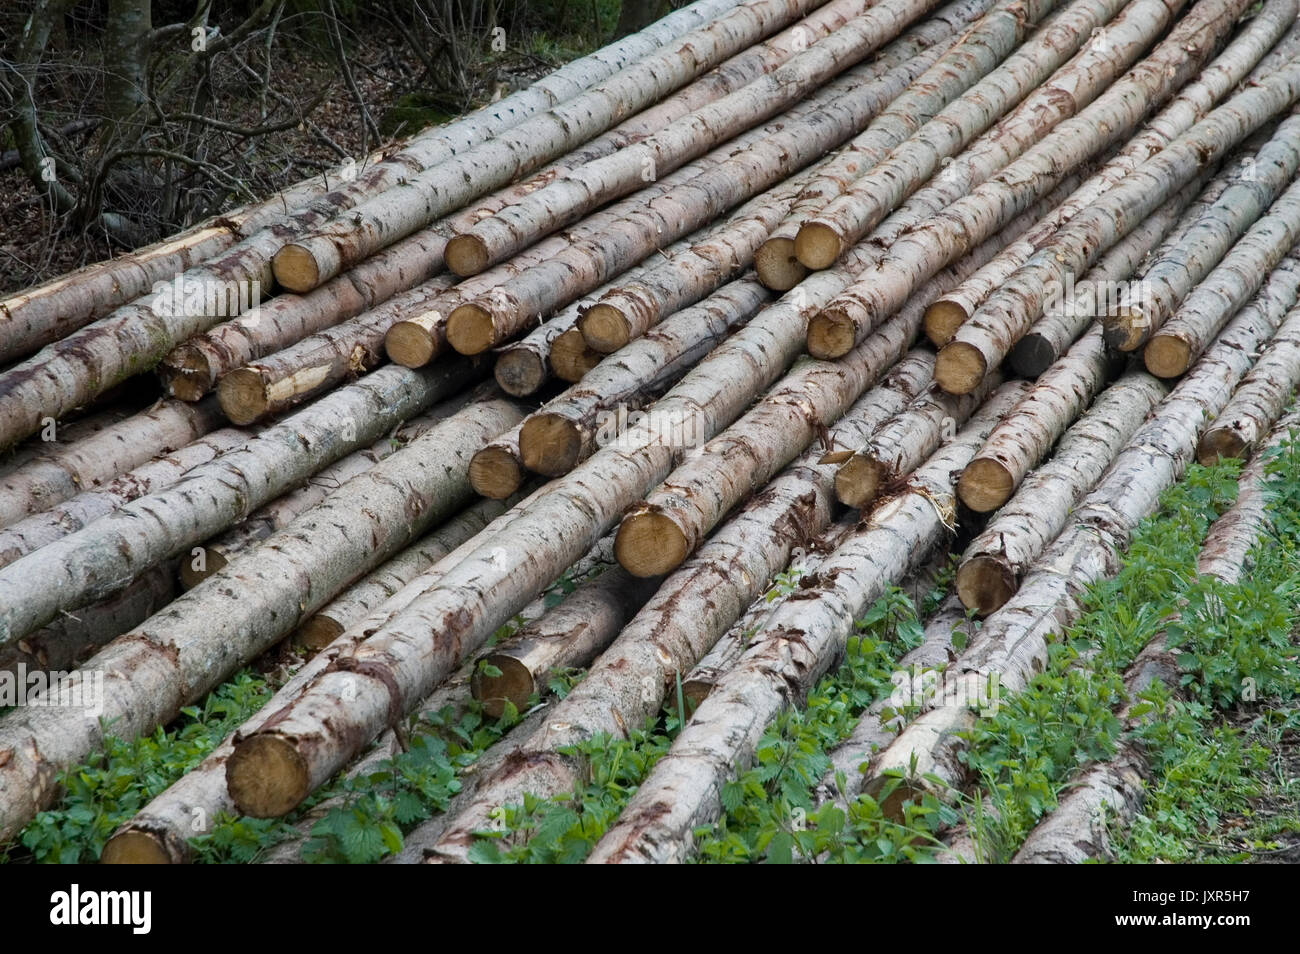 felled wood storing in forest - Stock Image